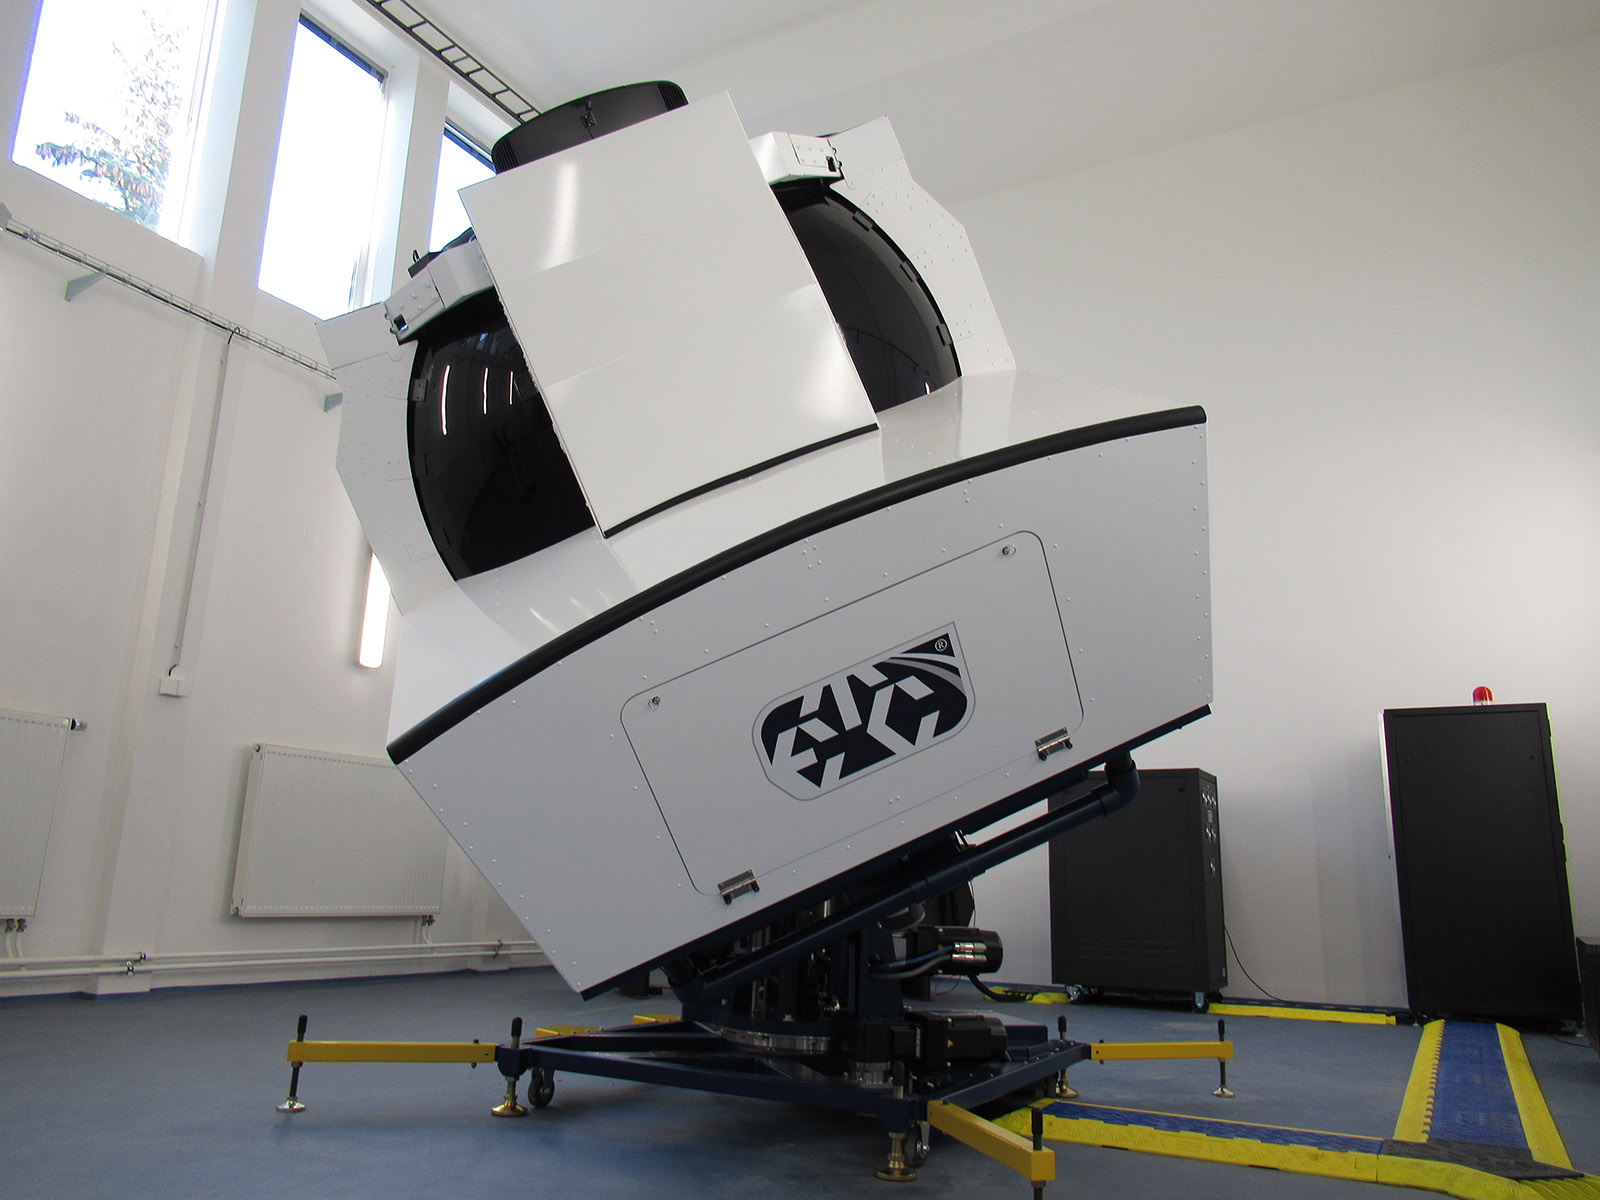 The GH-200 is a highly-versatile Spatial Disorientation Trainer for Fixed Wing and Rotary Wing